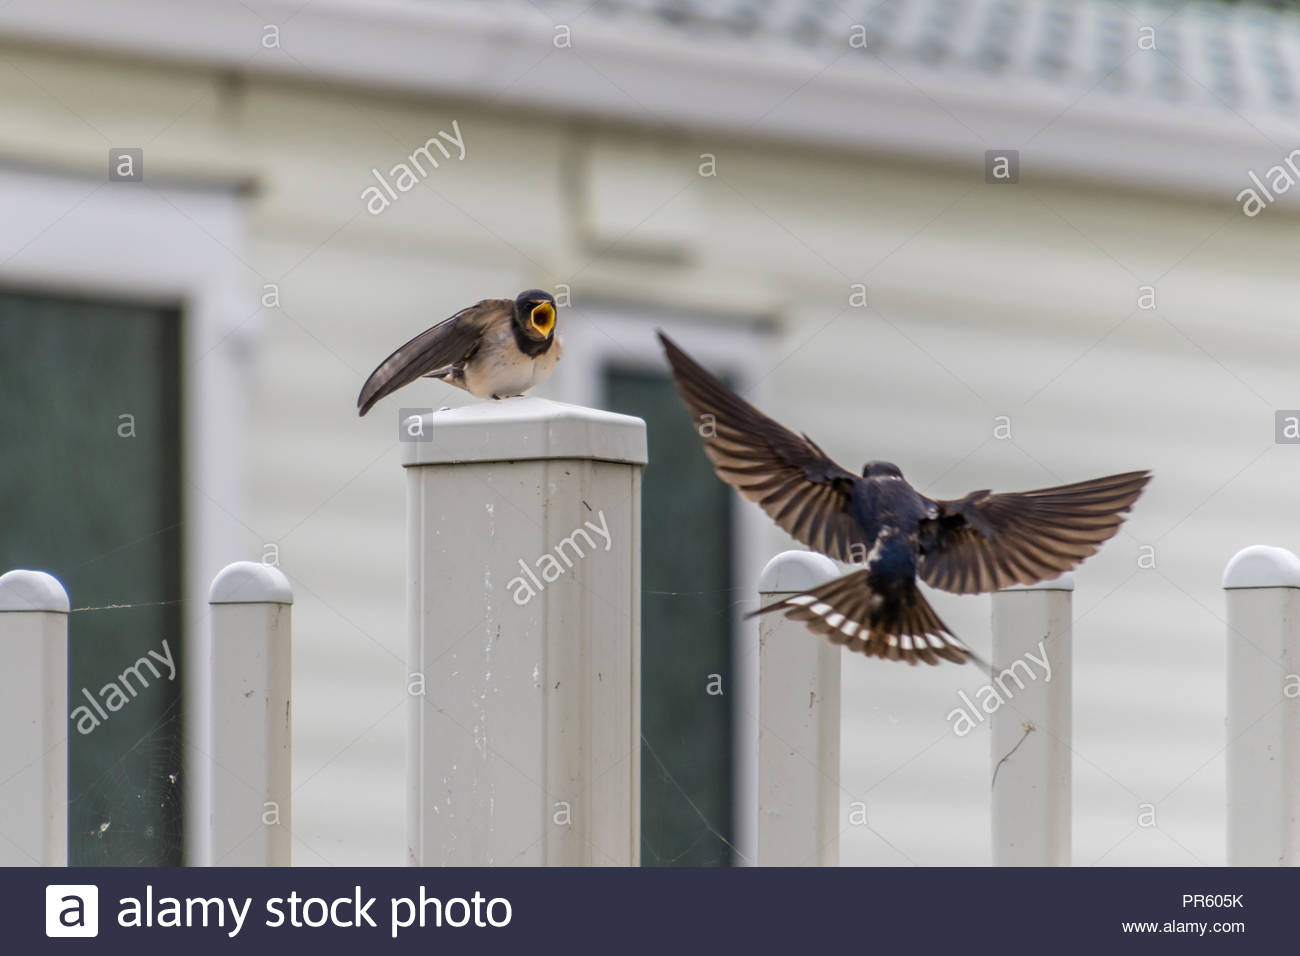 Young Swallow Waiting for Food - Stock Image